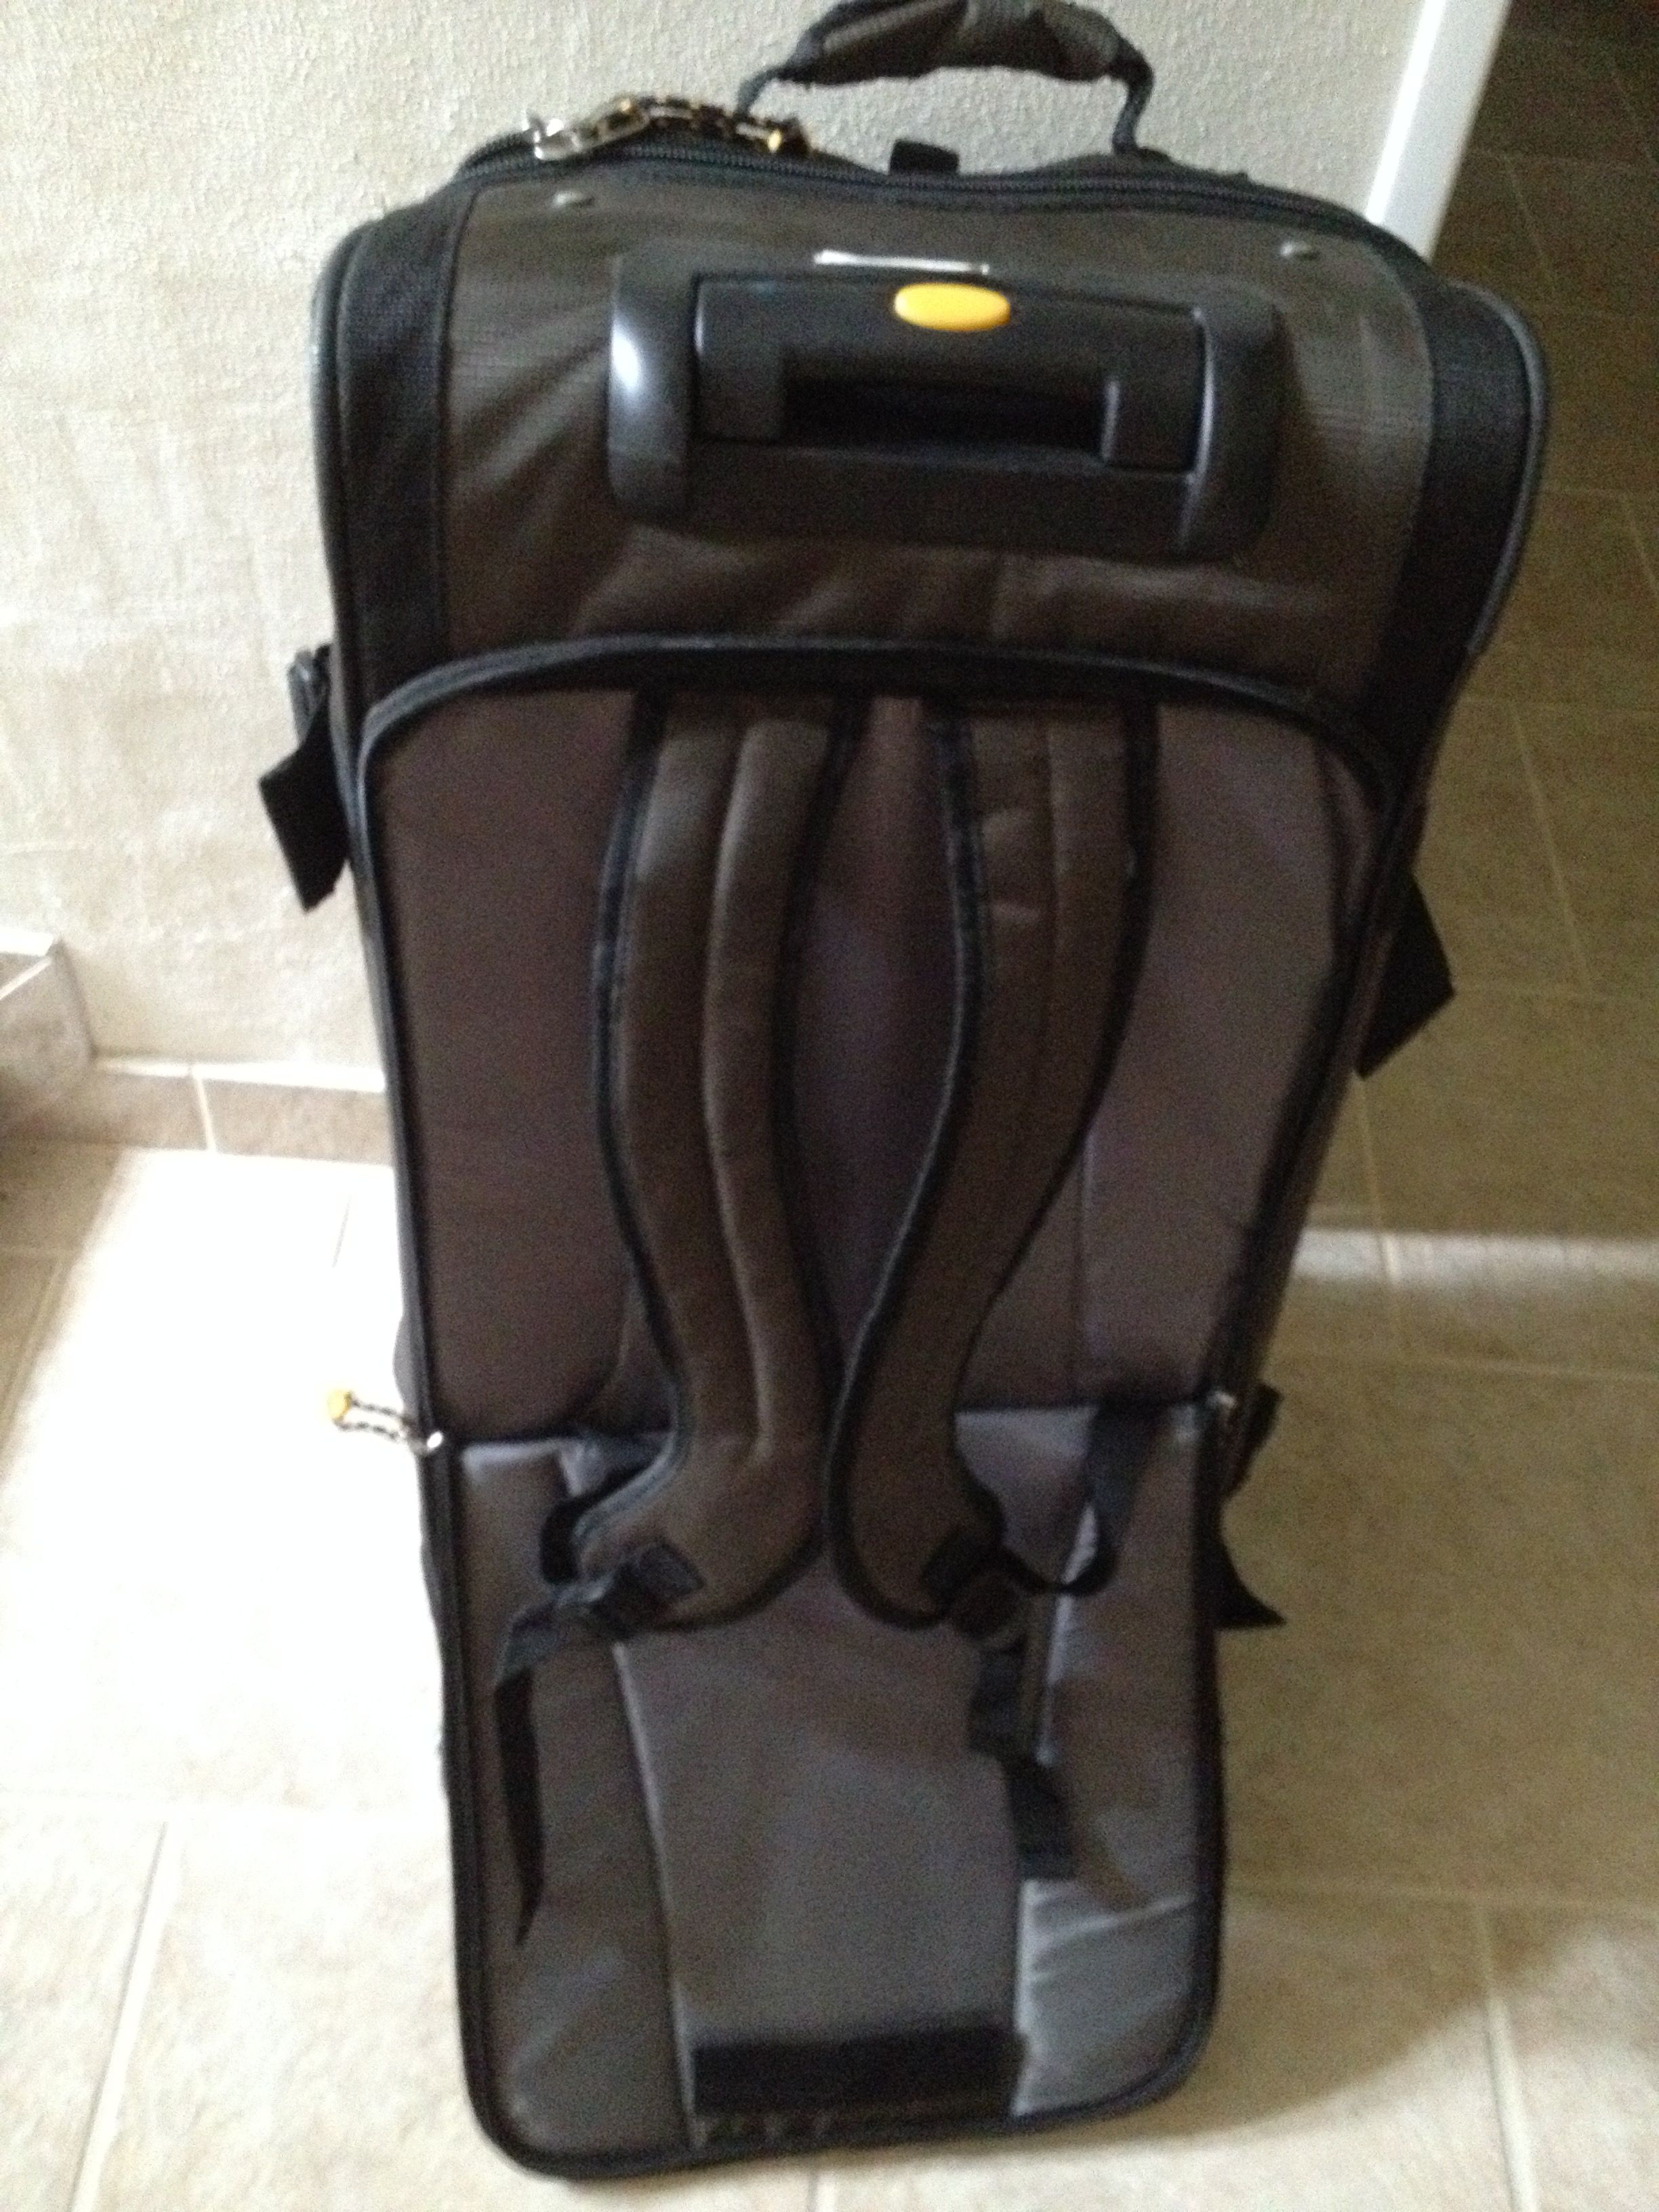 Samsonite 30 Inch Wheeled Duffel Costco With Backpack Straps 10 6 Lbs Or 4 8 Kg